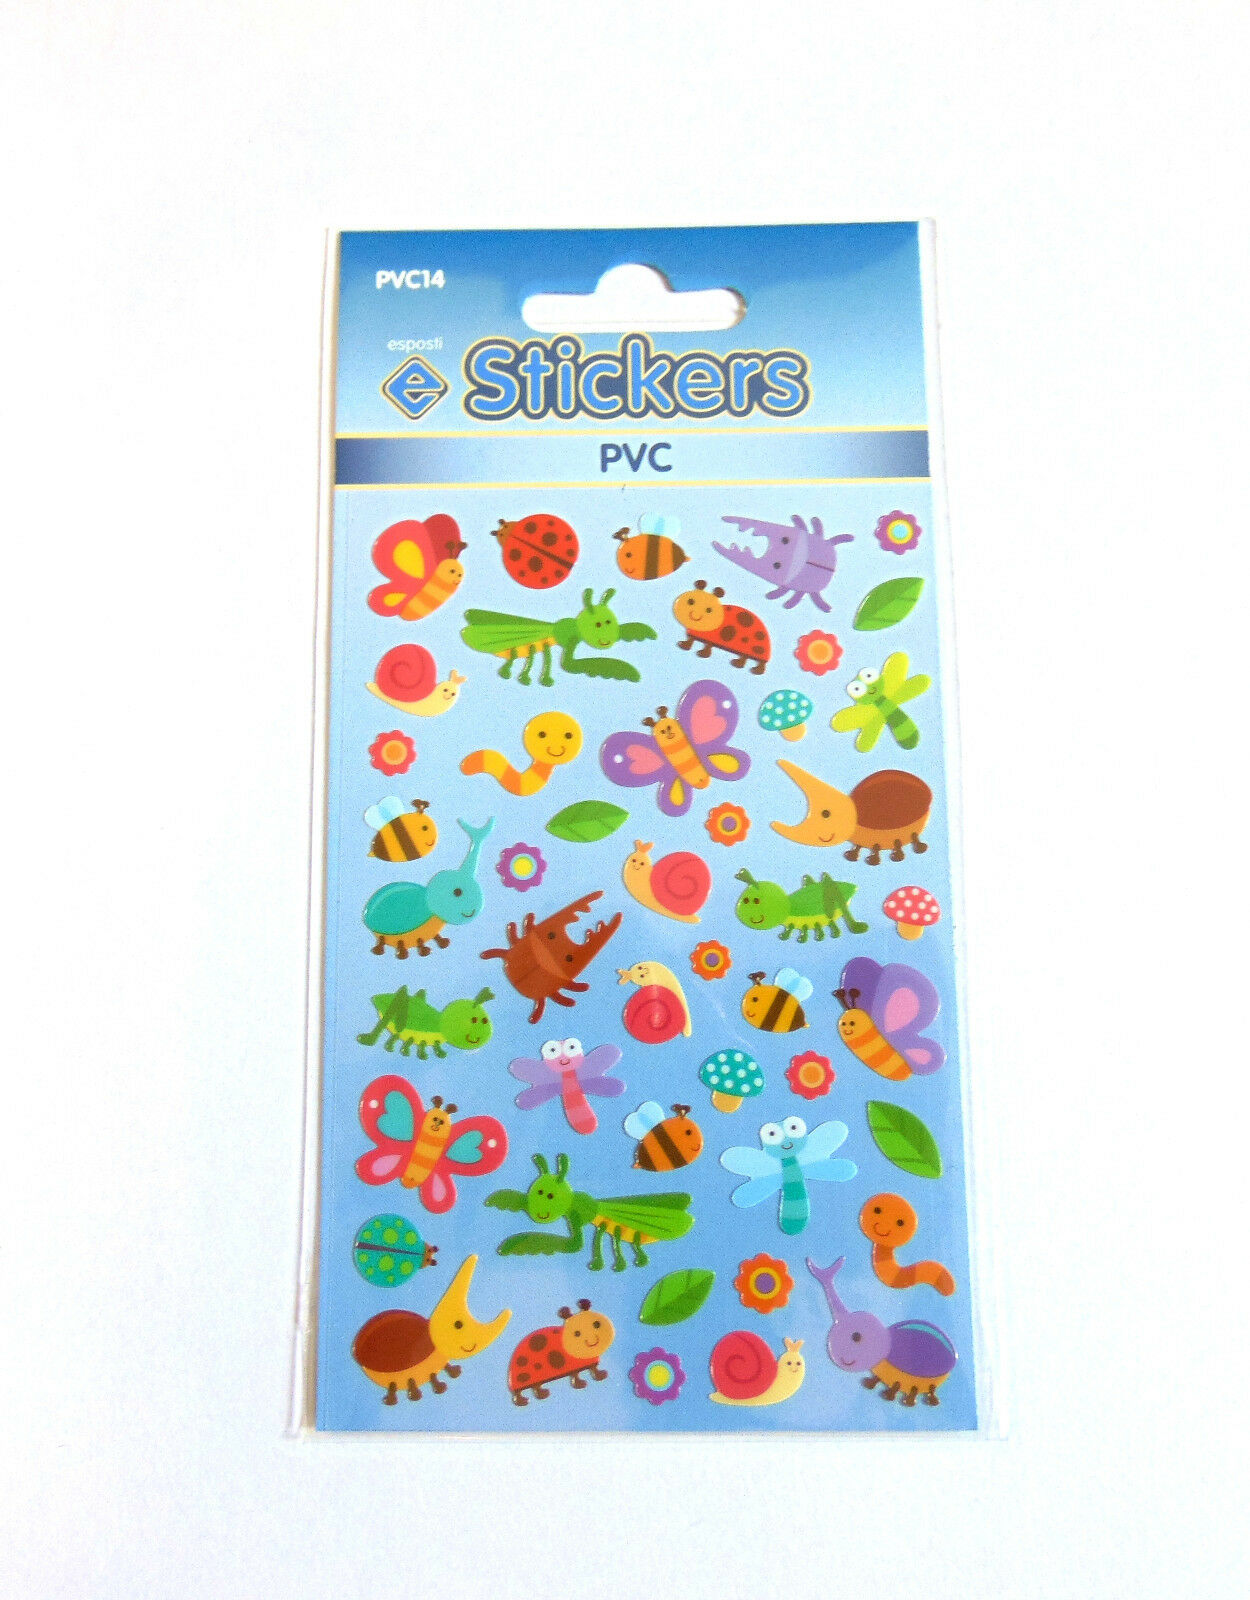 Bumble Bee Stickers For Kids Children Pvc14 Fun Labels Party Puffy Sticker Farmyard Norton Secured Powered By Verisign